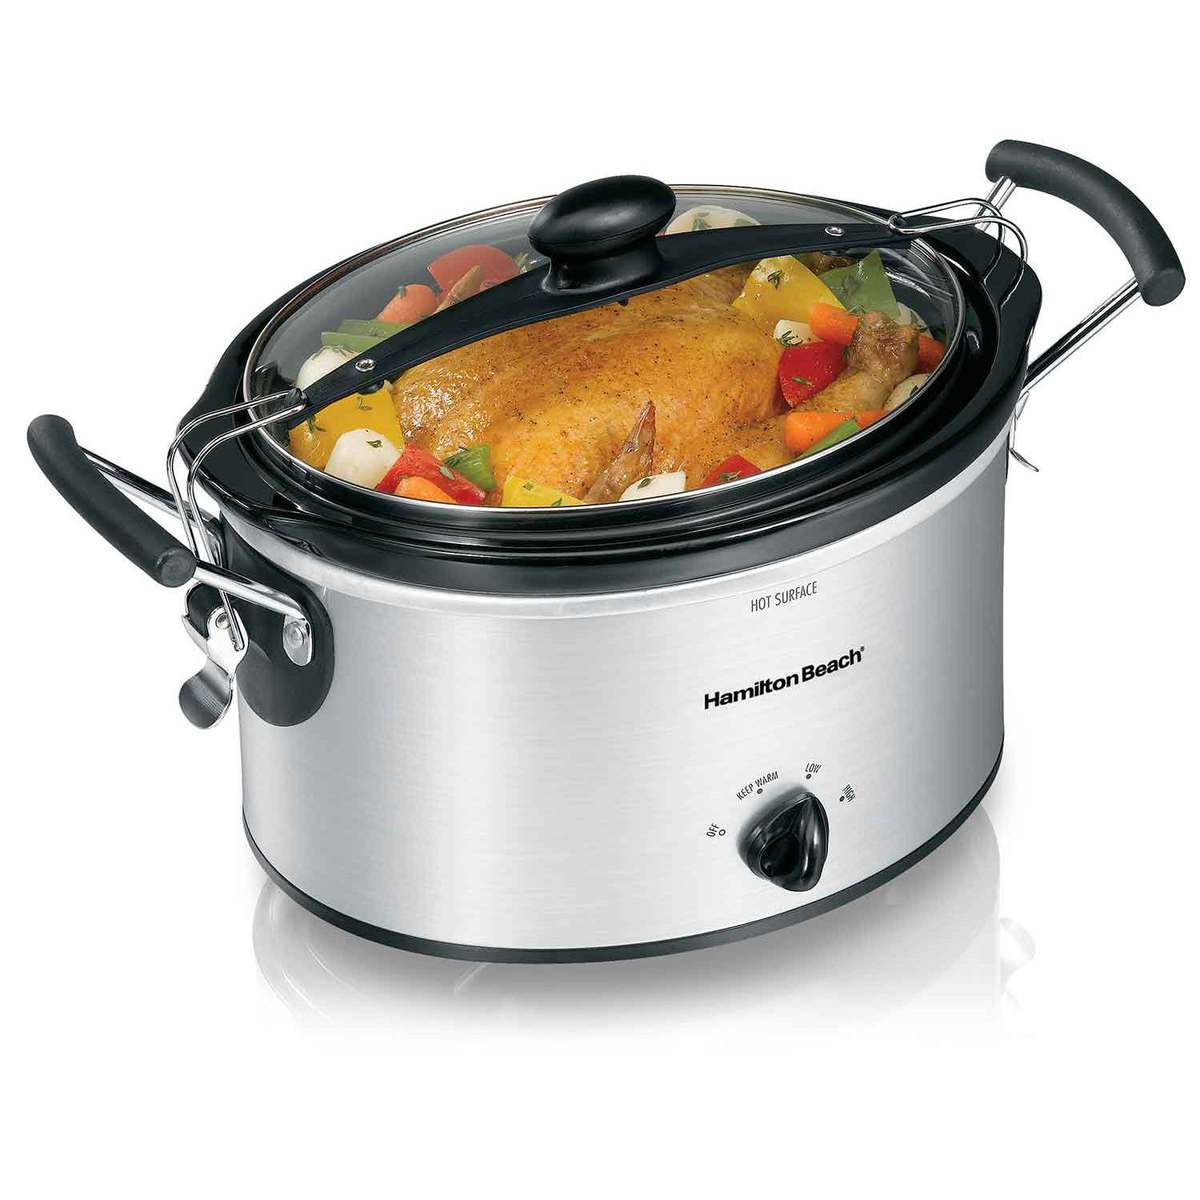 Stay or Go® 4 Quart Slow Cooker (33149)